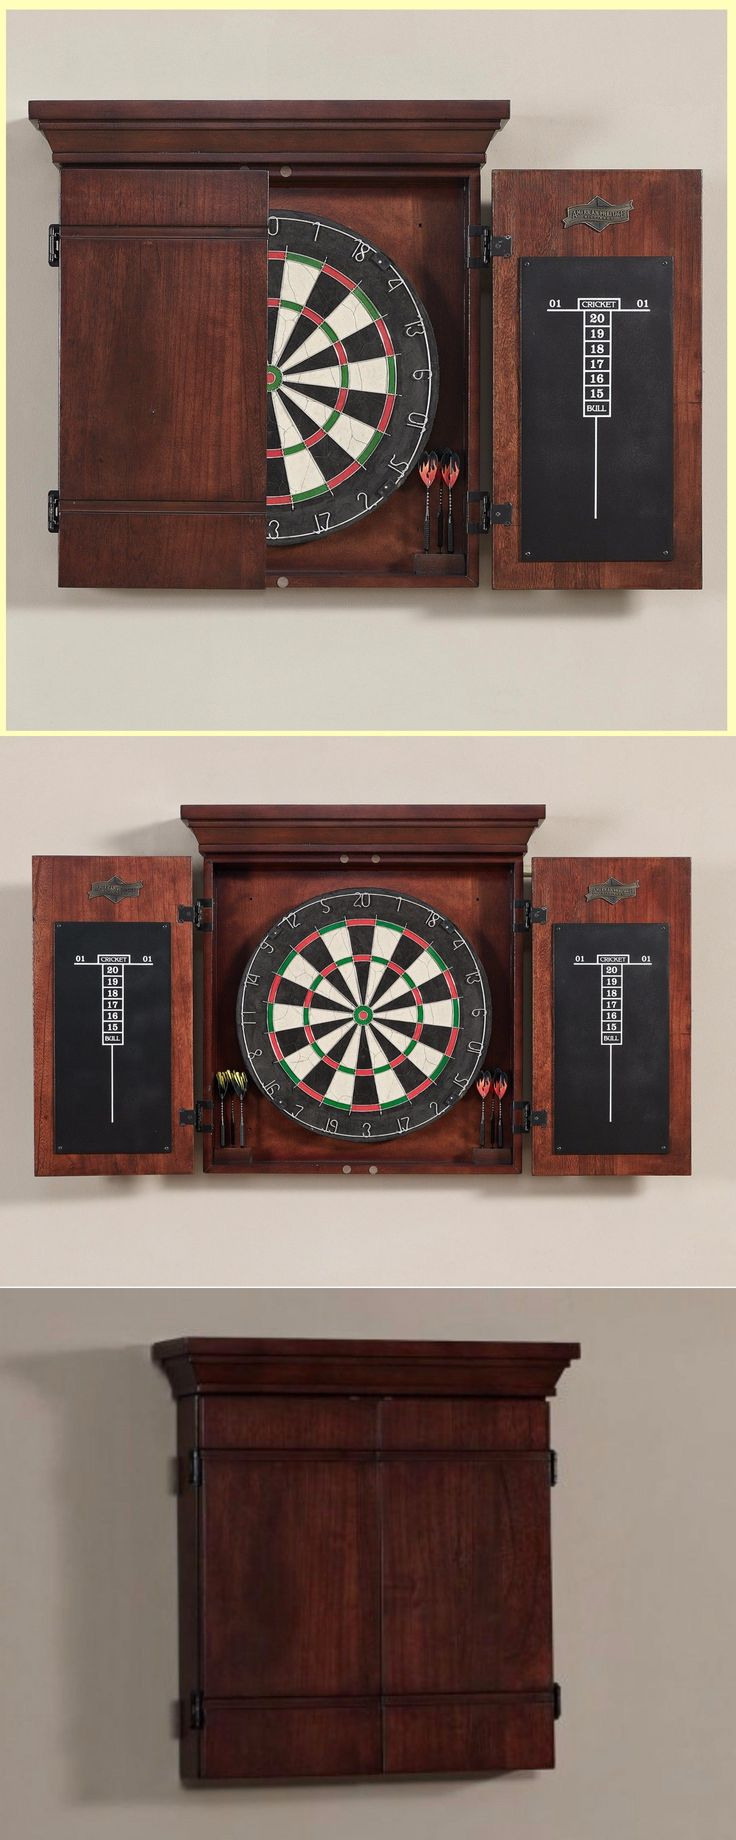 Dart Boards 72576: Vintage Dart Board Cabinet Dartboard Target Game Classic Wooden Traditional Unit BUY IT NOW ONLY: $363.95